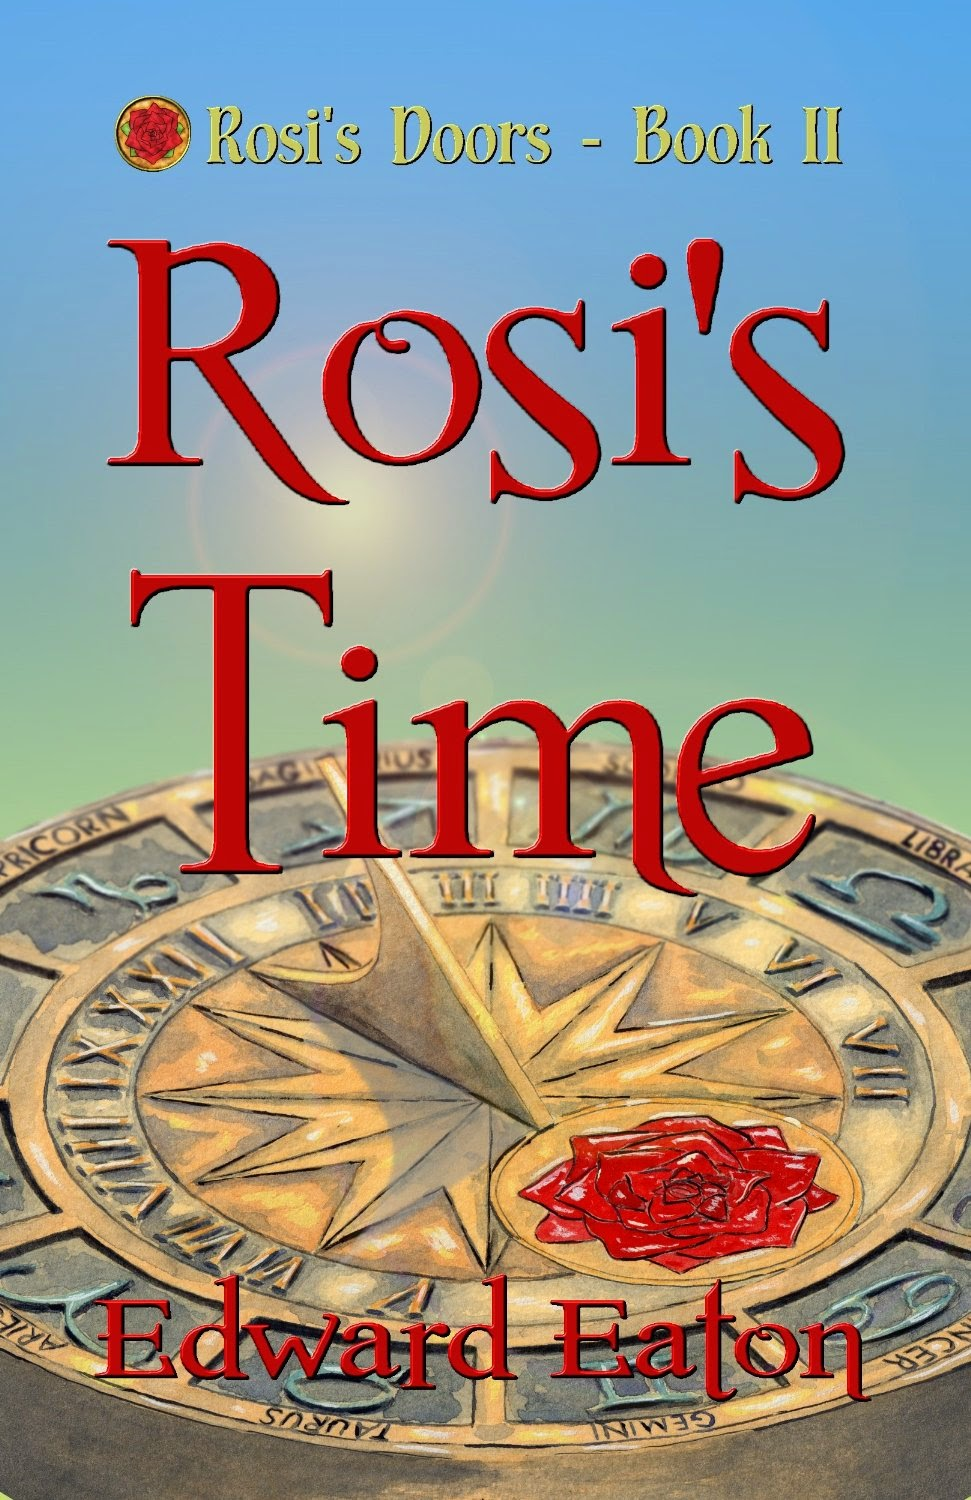 http://www.amazon.com/Rosis-Time-Doors-Book-ebook/dp/B008G3271S/ref=la_B006AH2VJ0_1_2?s=books&ie=UTF8&qid=1409596407&sr=1-2